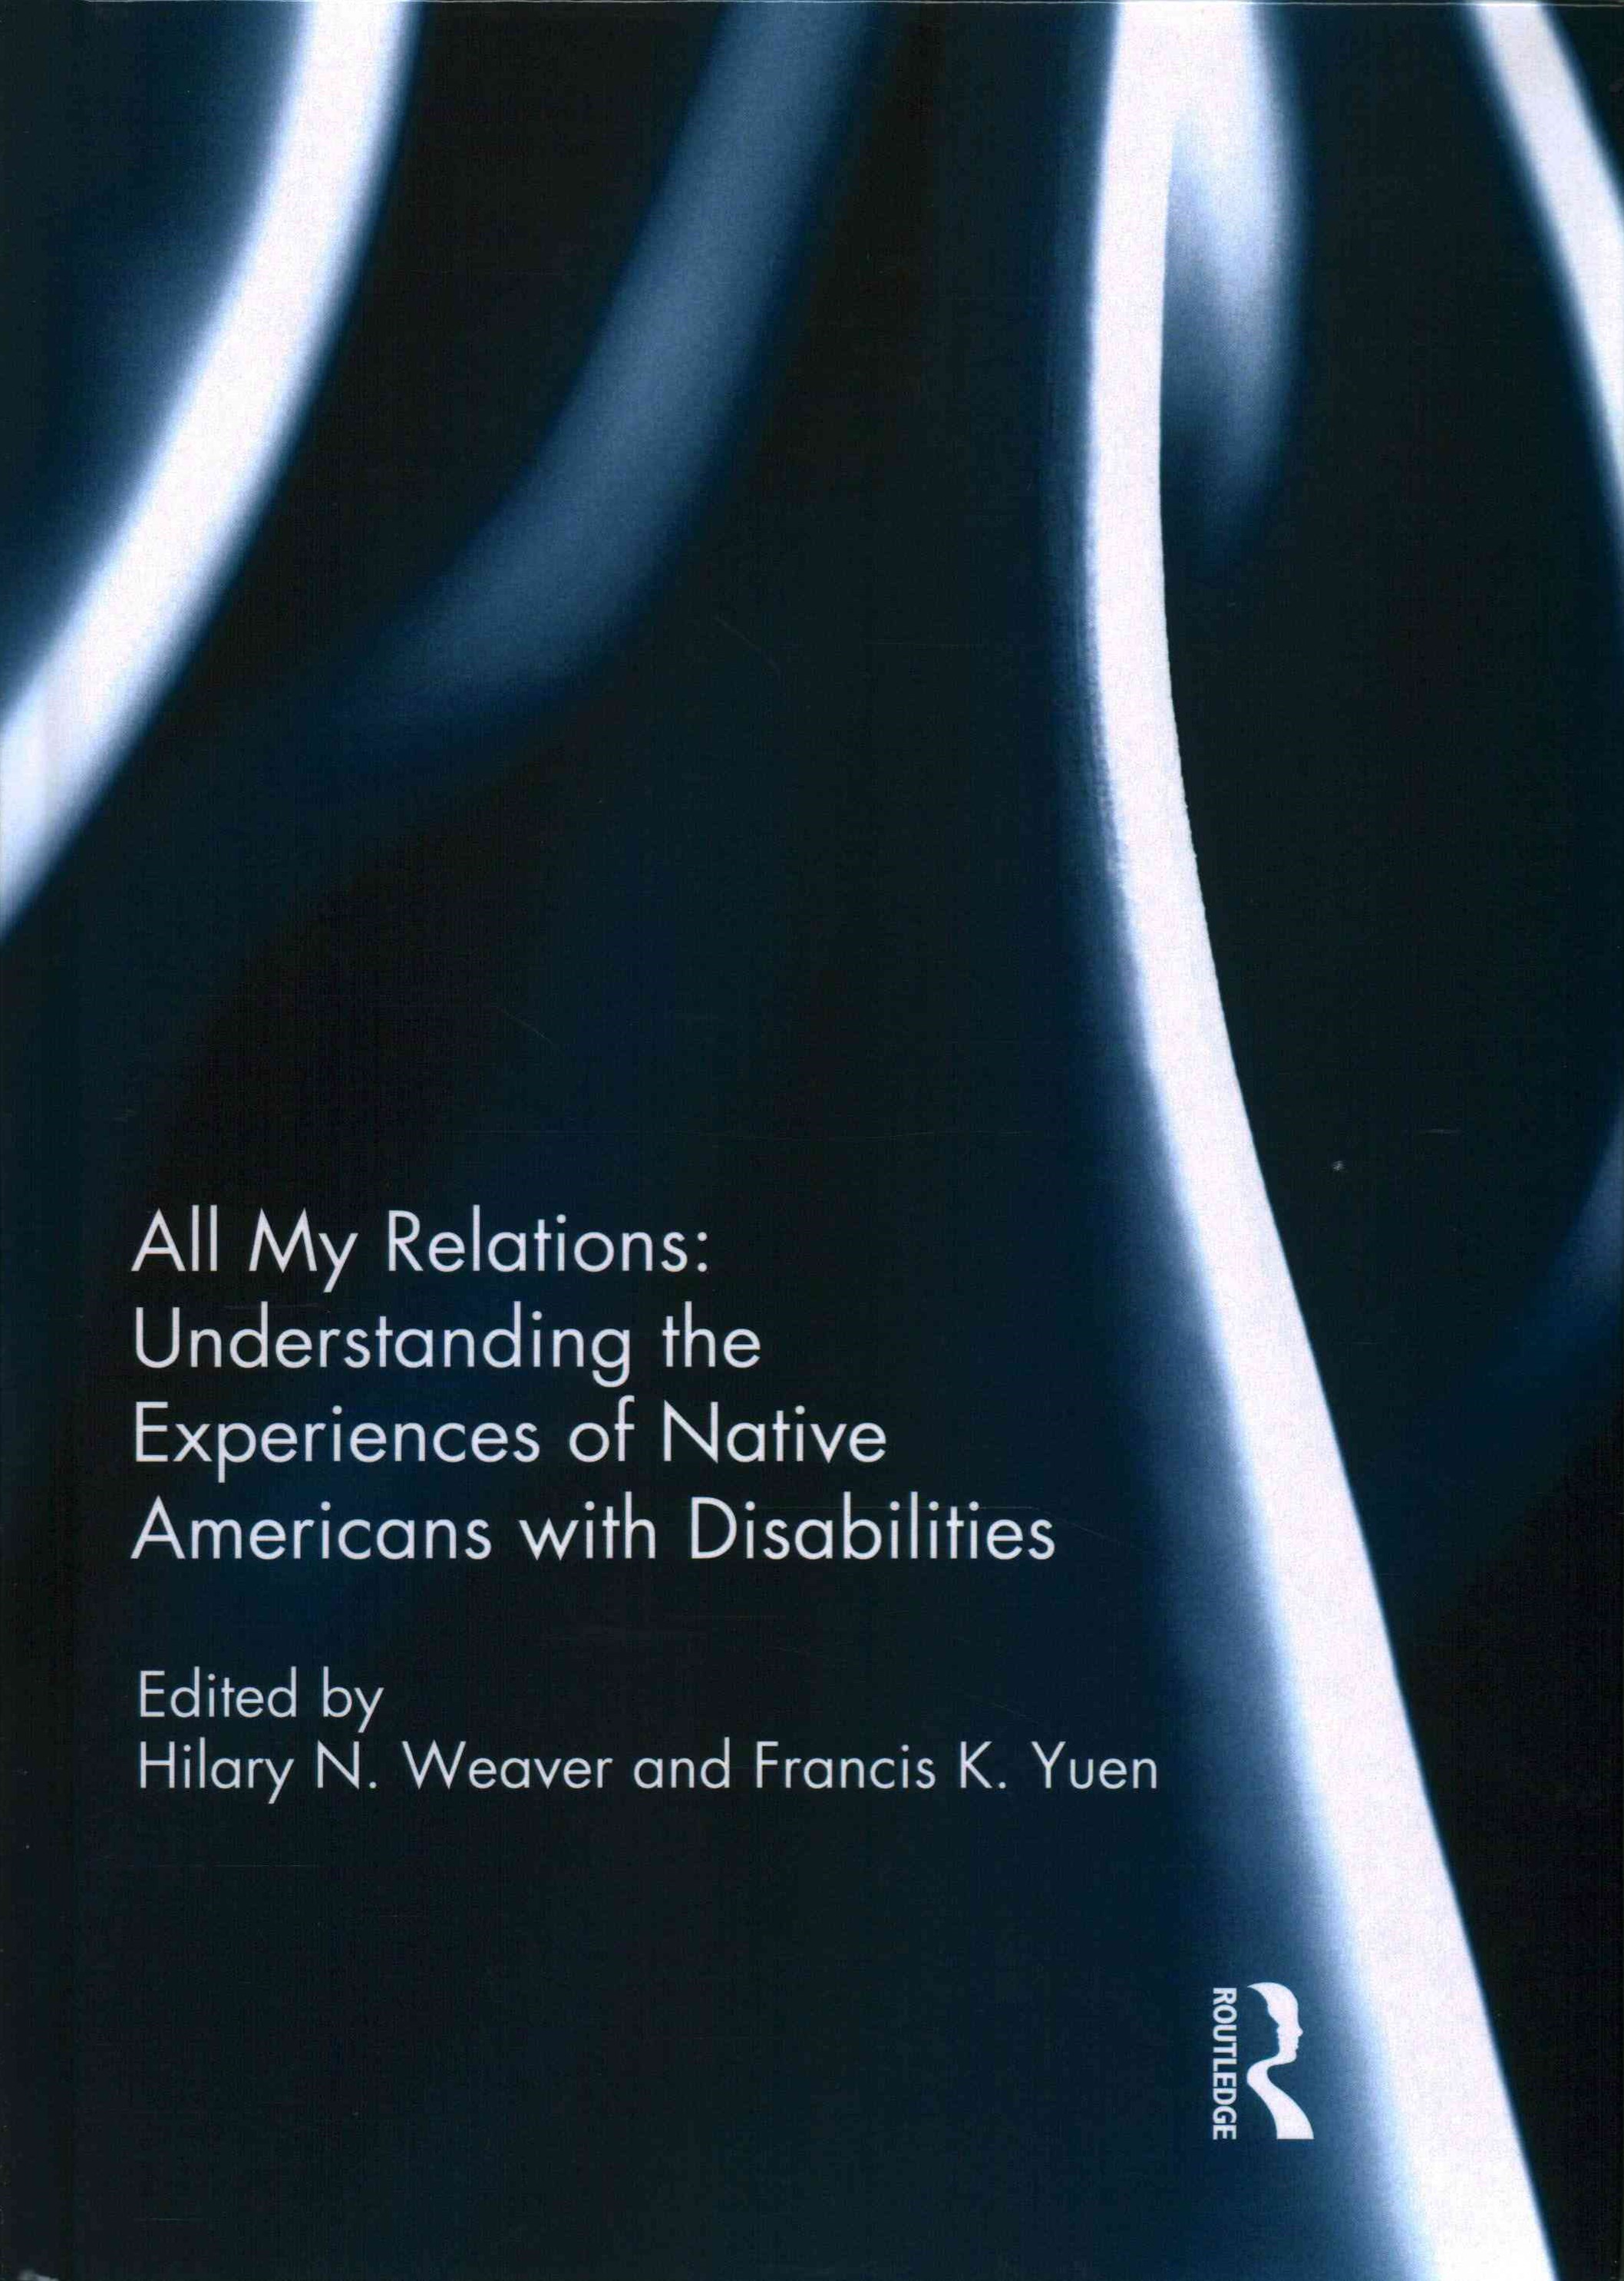 All My Relations: Understanding the Experiences of Native Americans with Disabilities